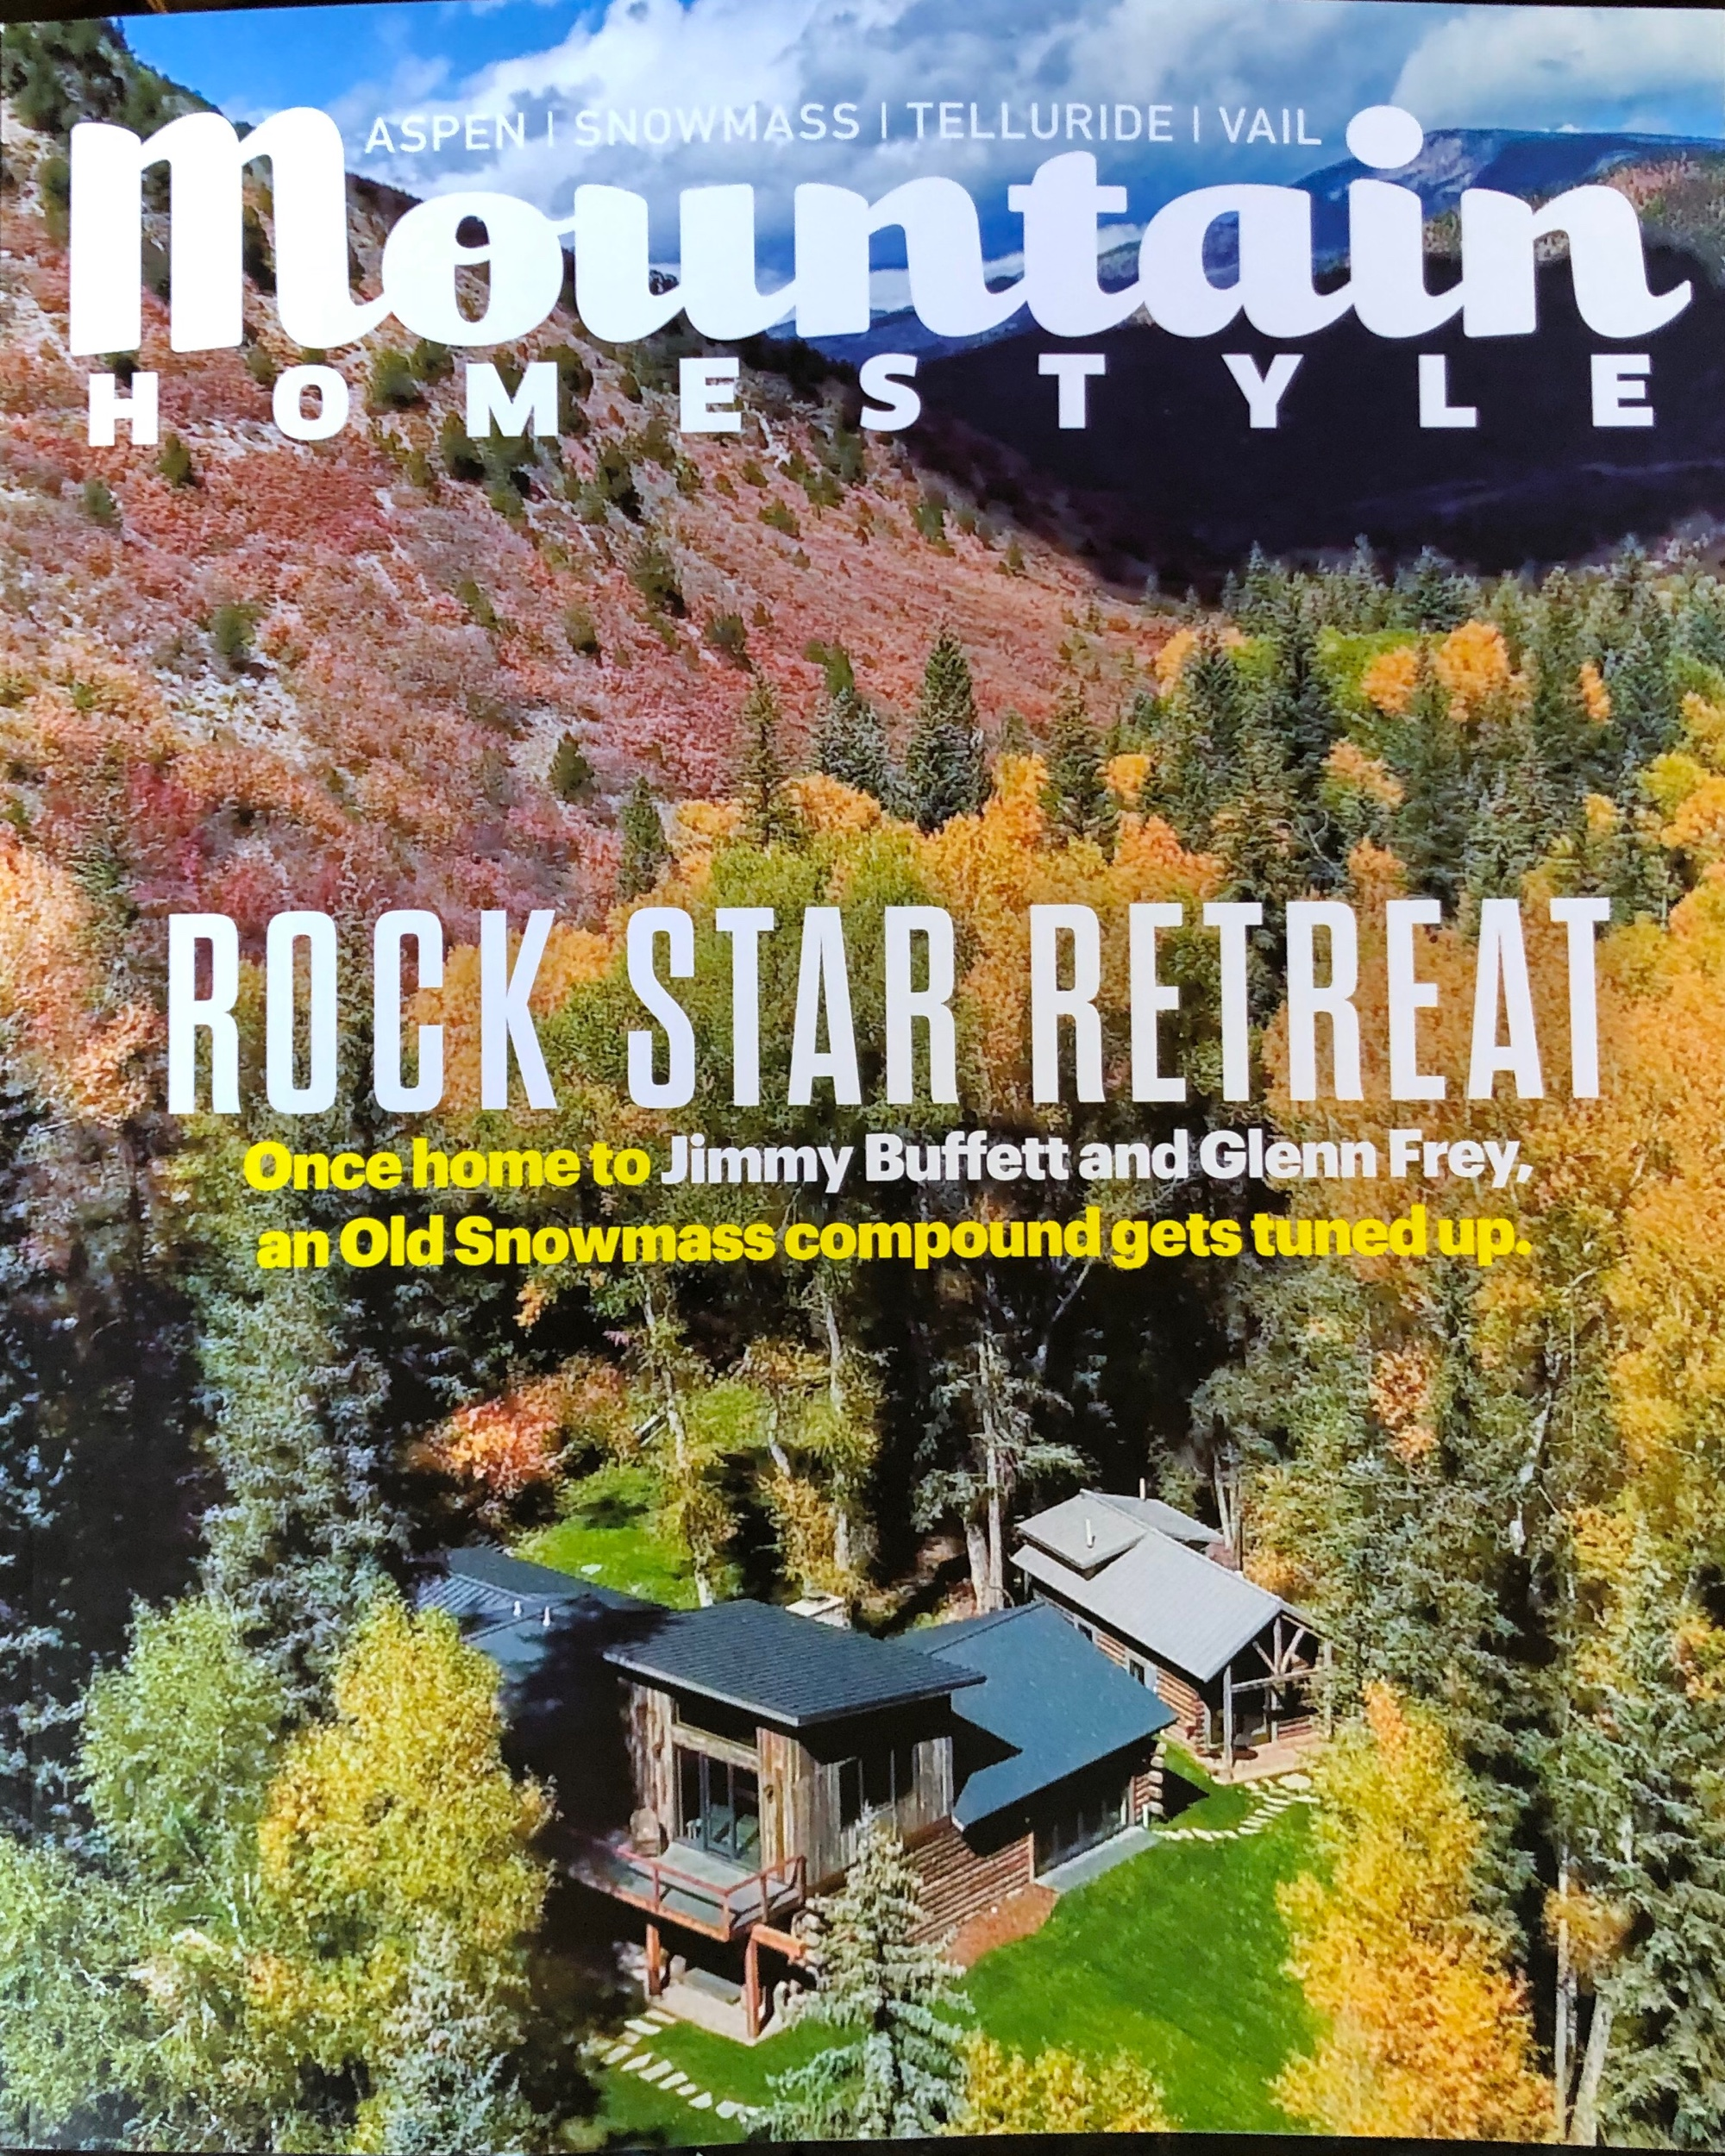 MEDIA - Publications on Mad Dog Ranch and the Recording Studio